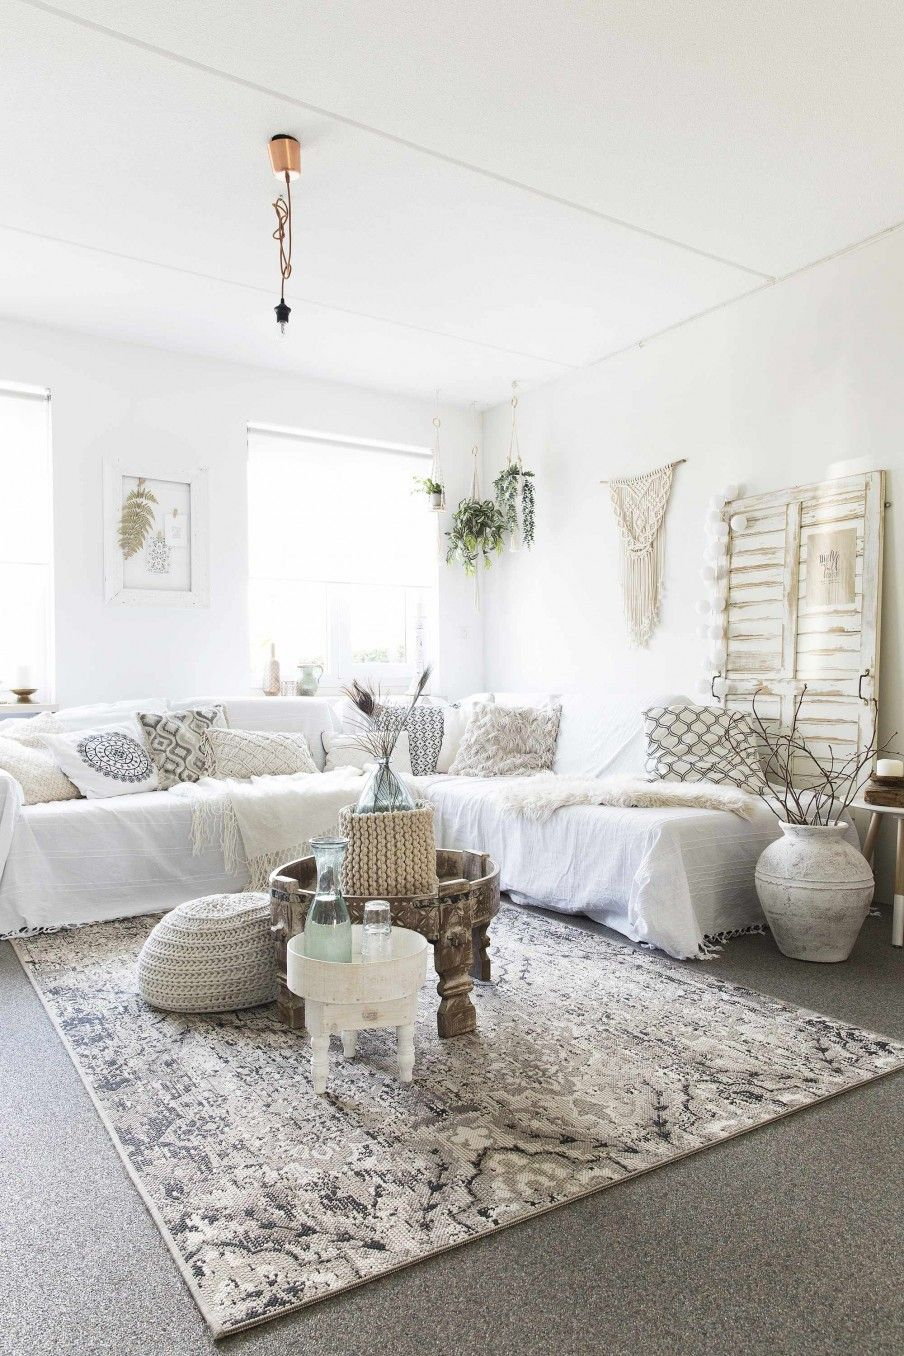 Witte woonkamer met bohemian stijl | White living room with bohemian ...